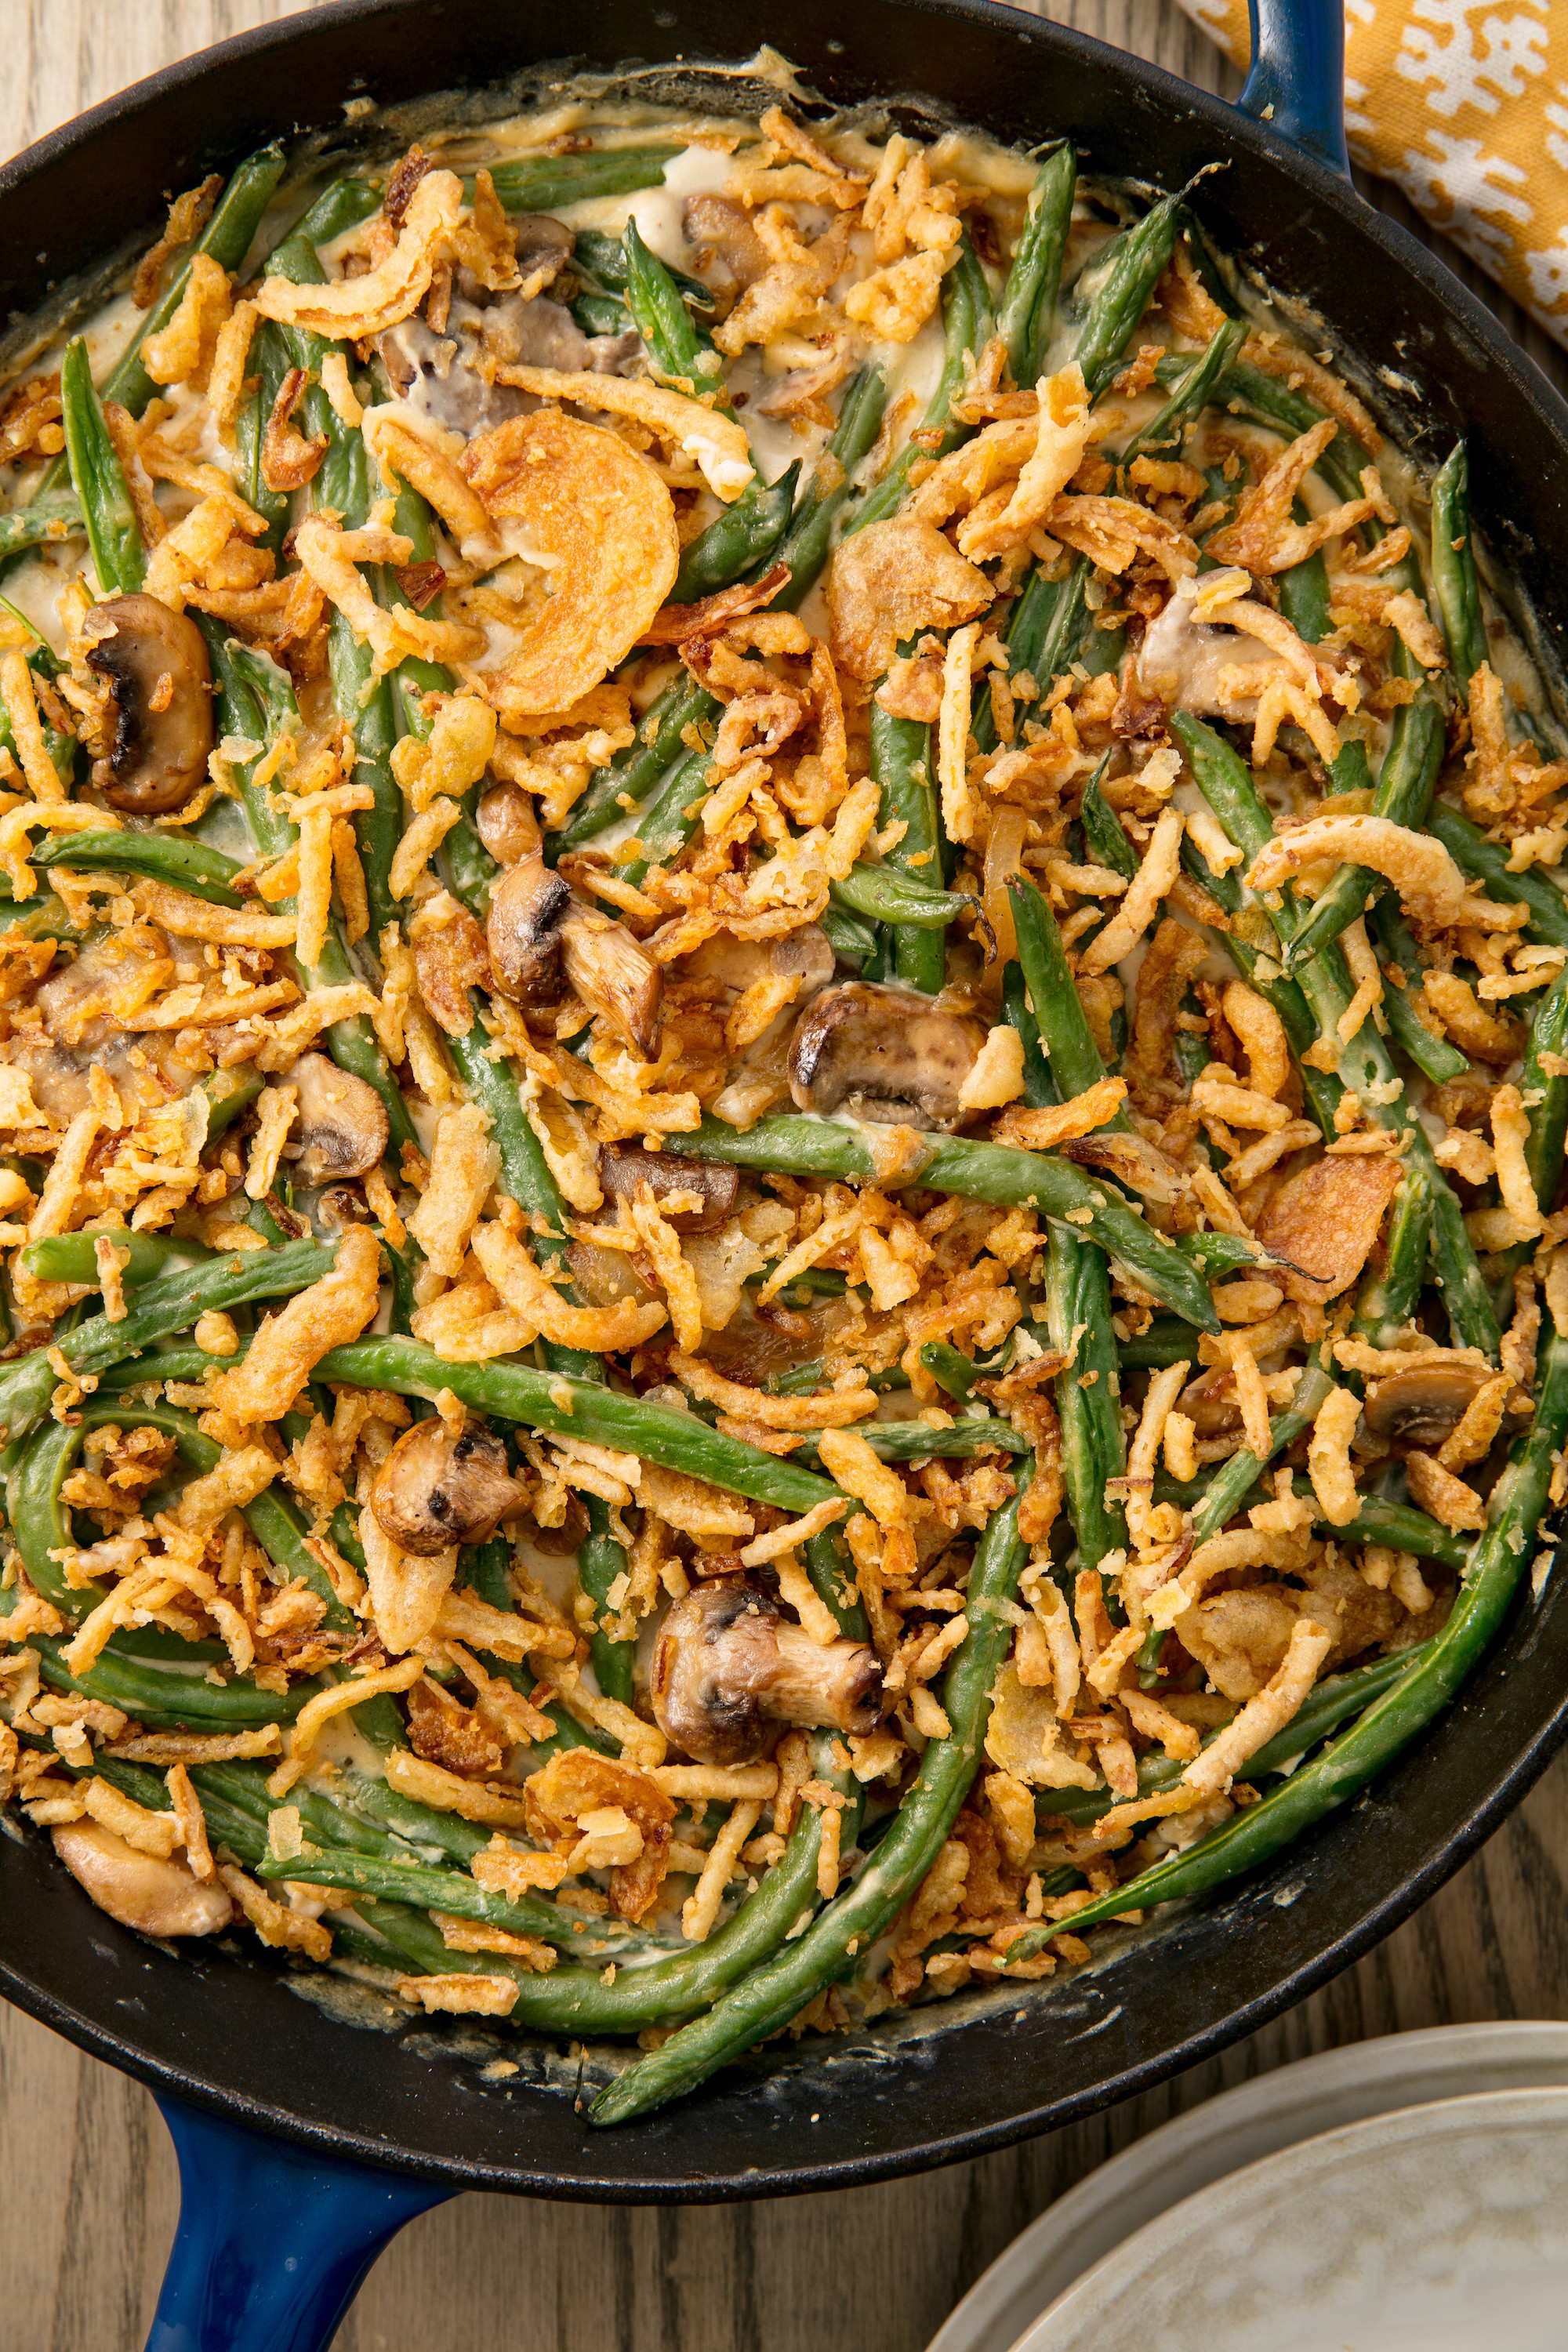 Best Vegetable Side Dishes For Thanksgiving  40 Easy Ve able Side Dishes Best Recipes for Veggie